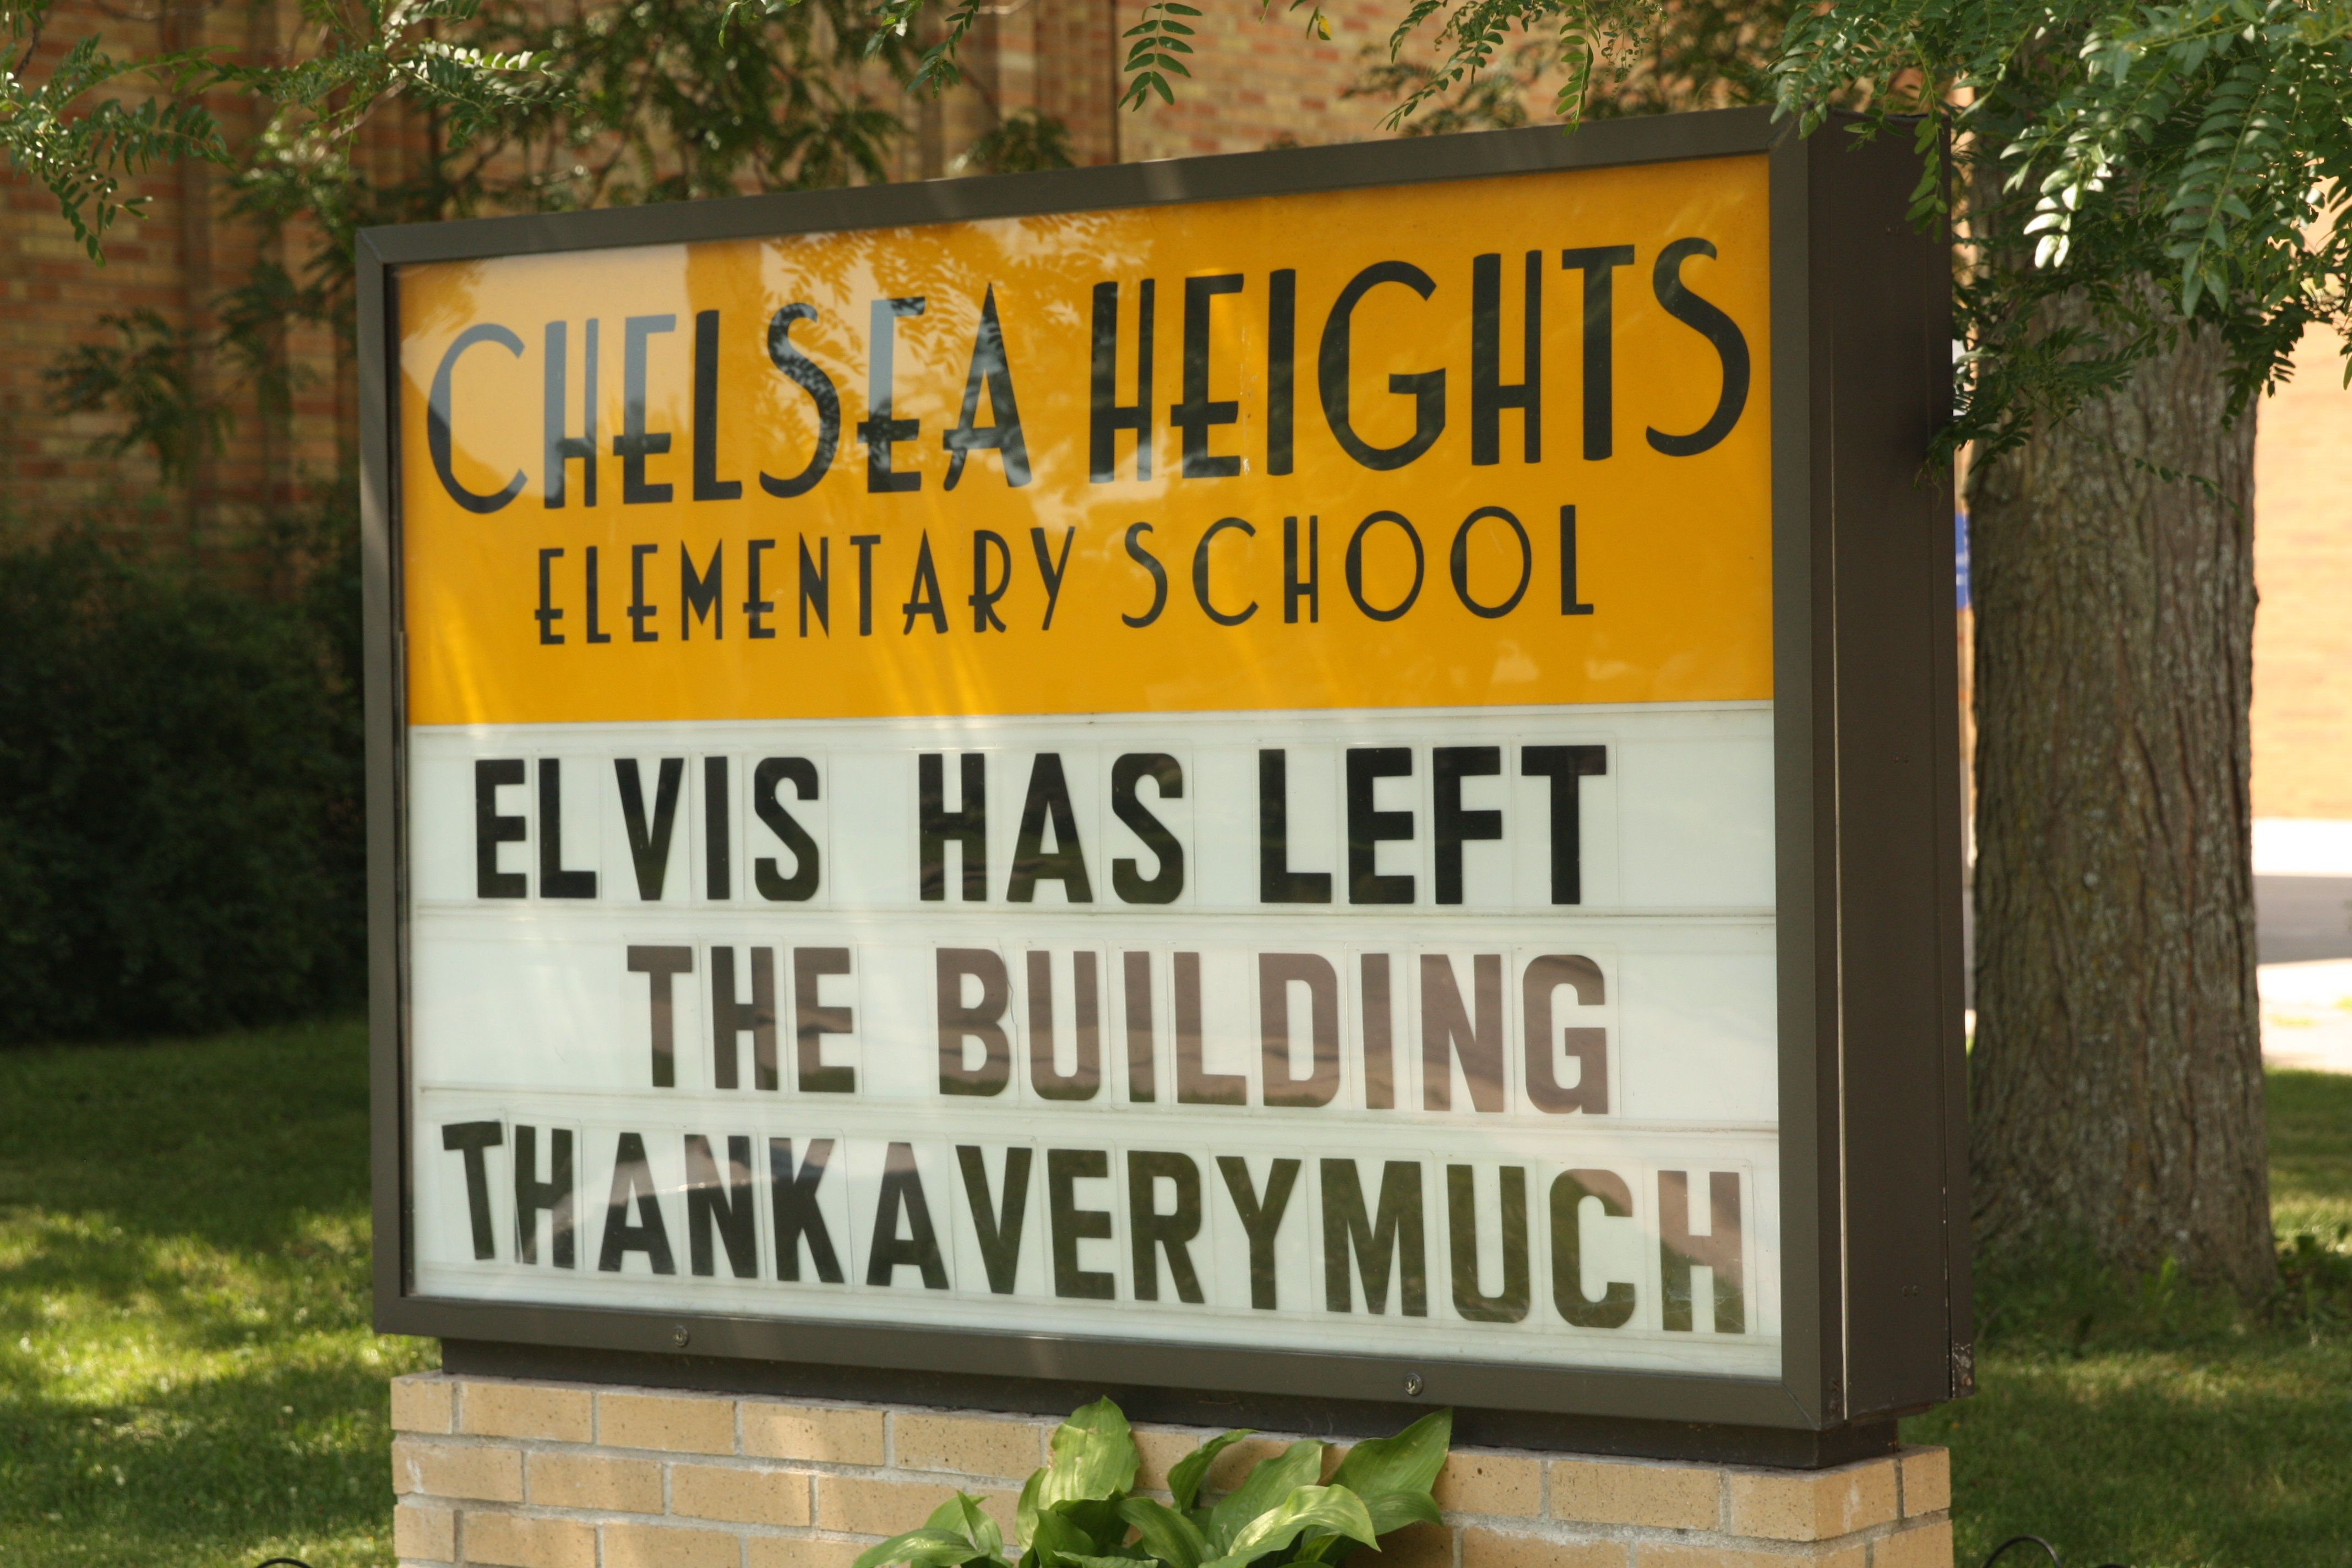 Some creative soul at Chelsea Heights noted the summer break in a fun way.